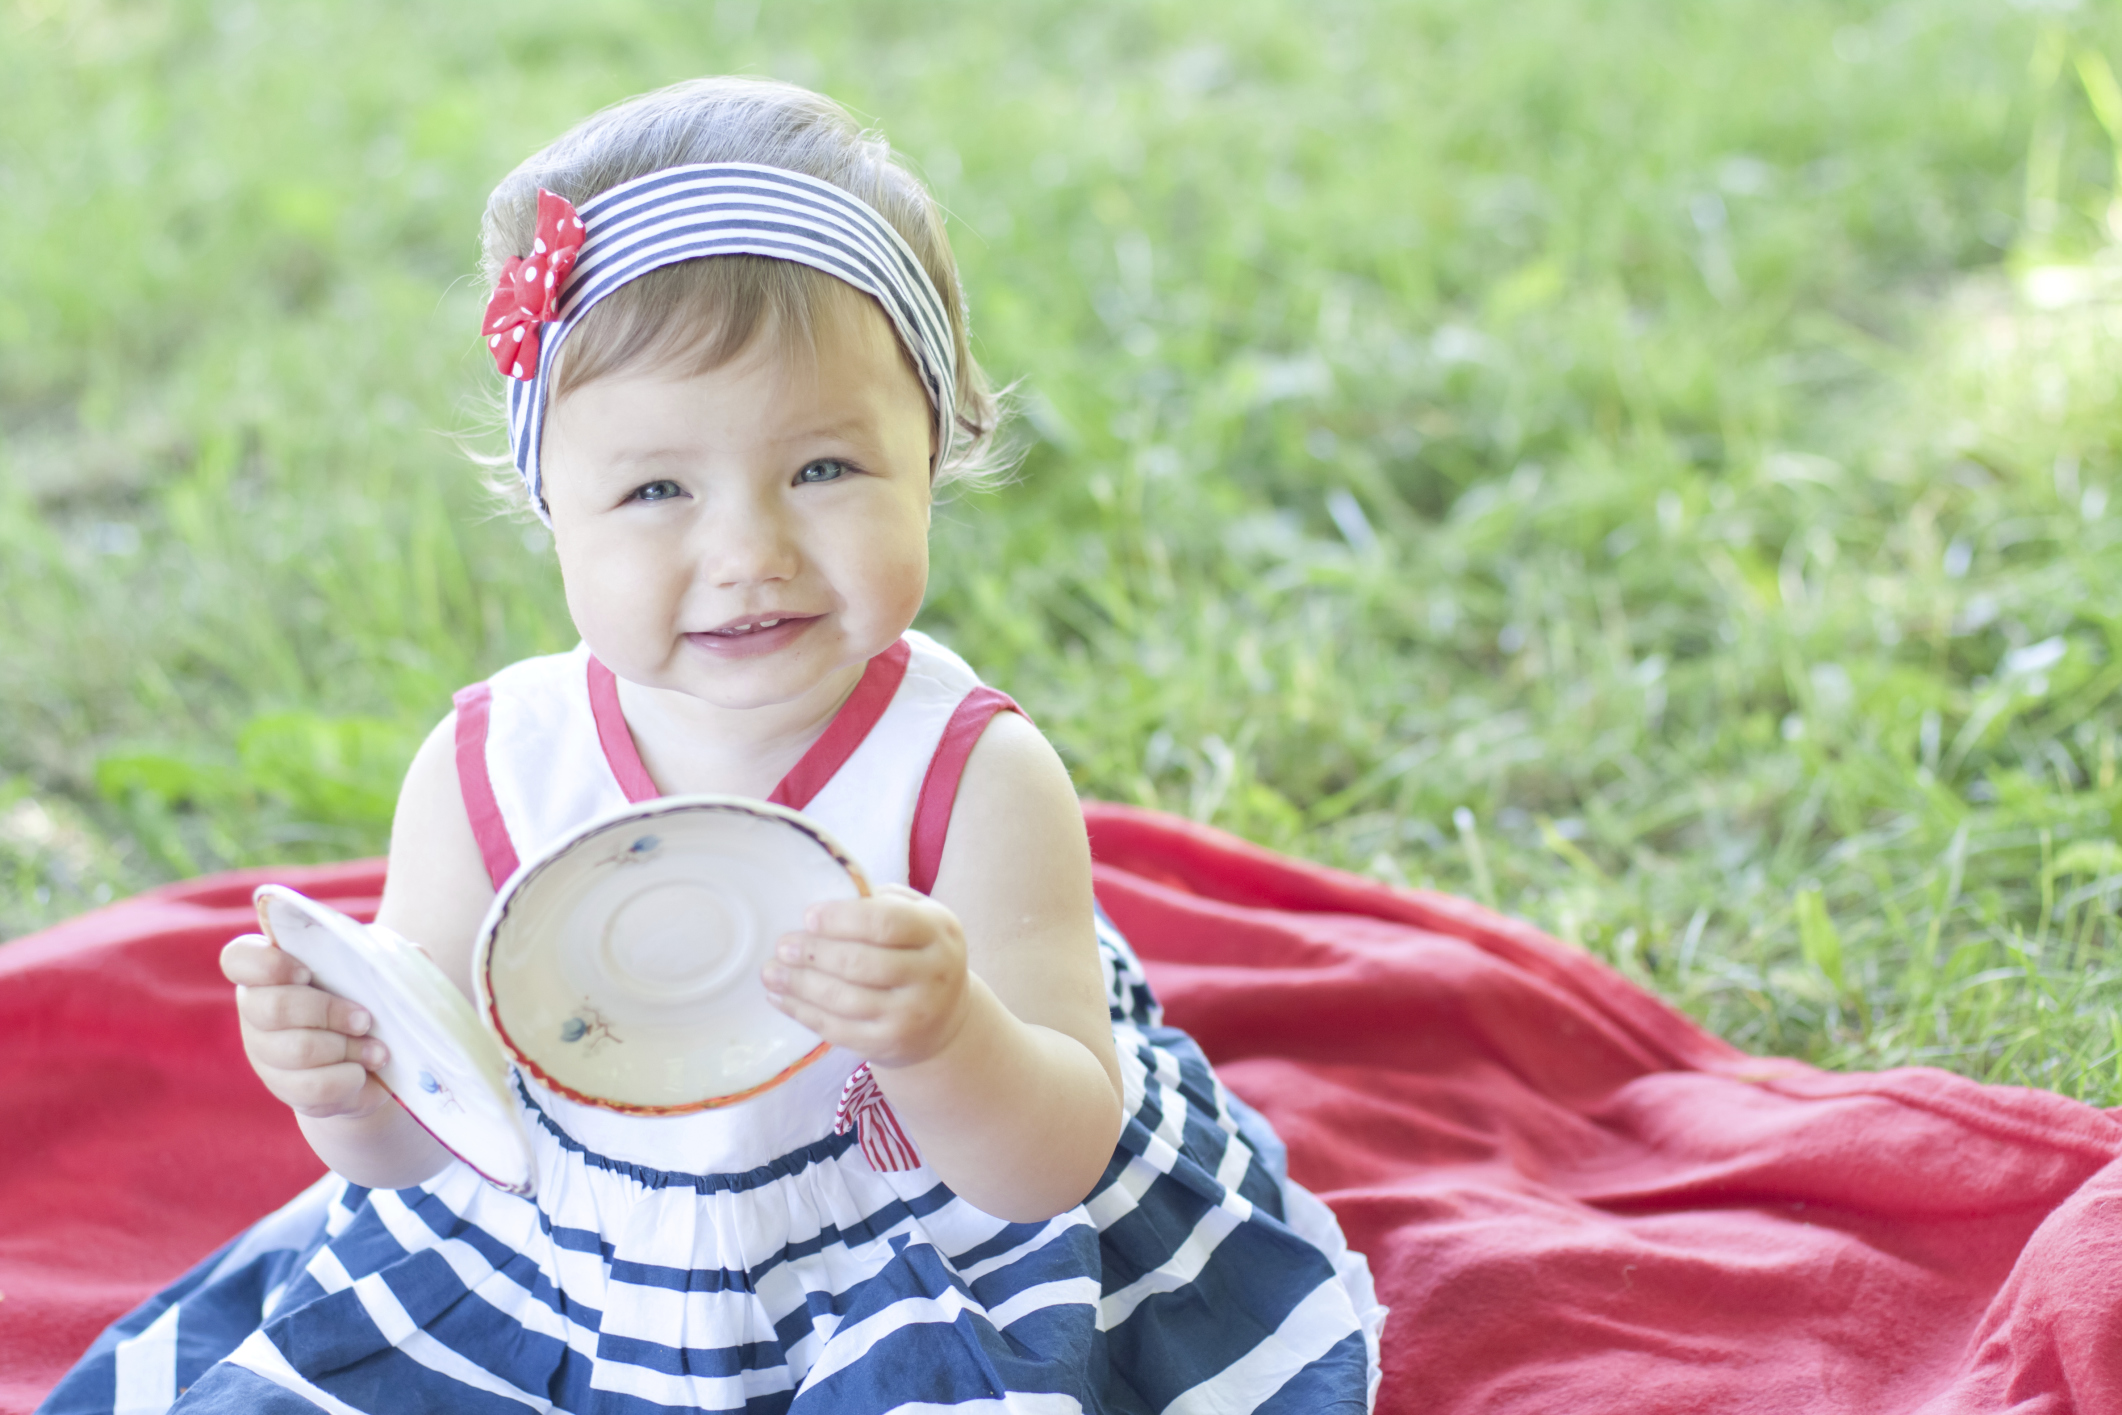 What Should a 16 Month Old Eat